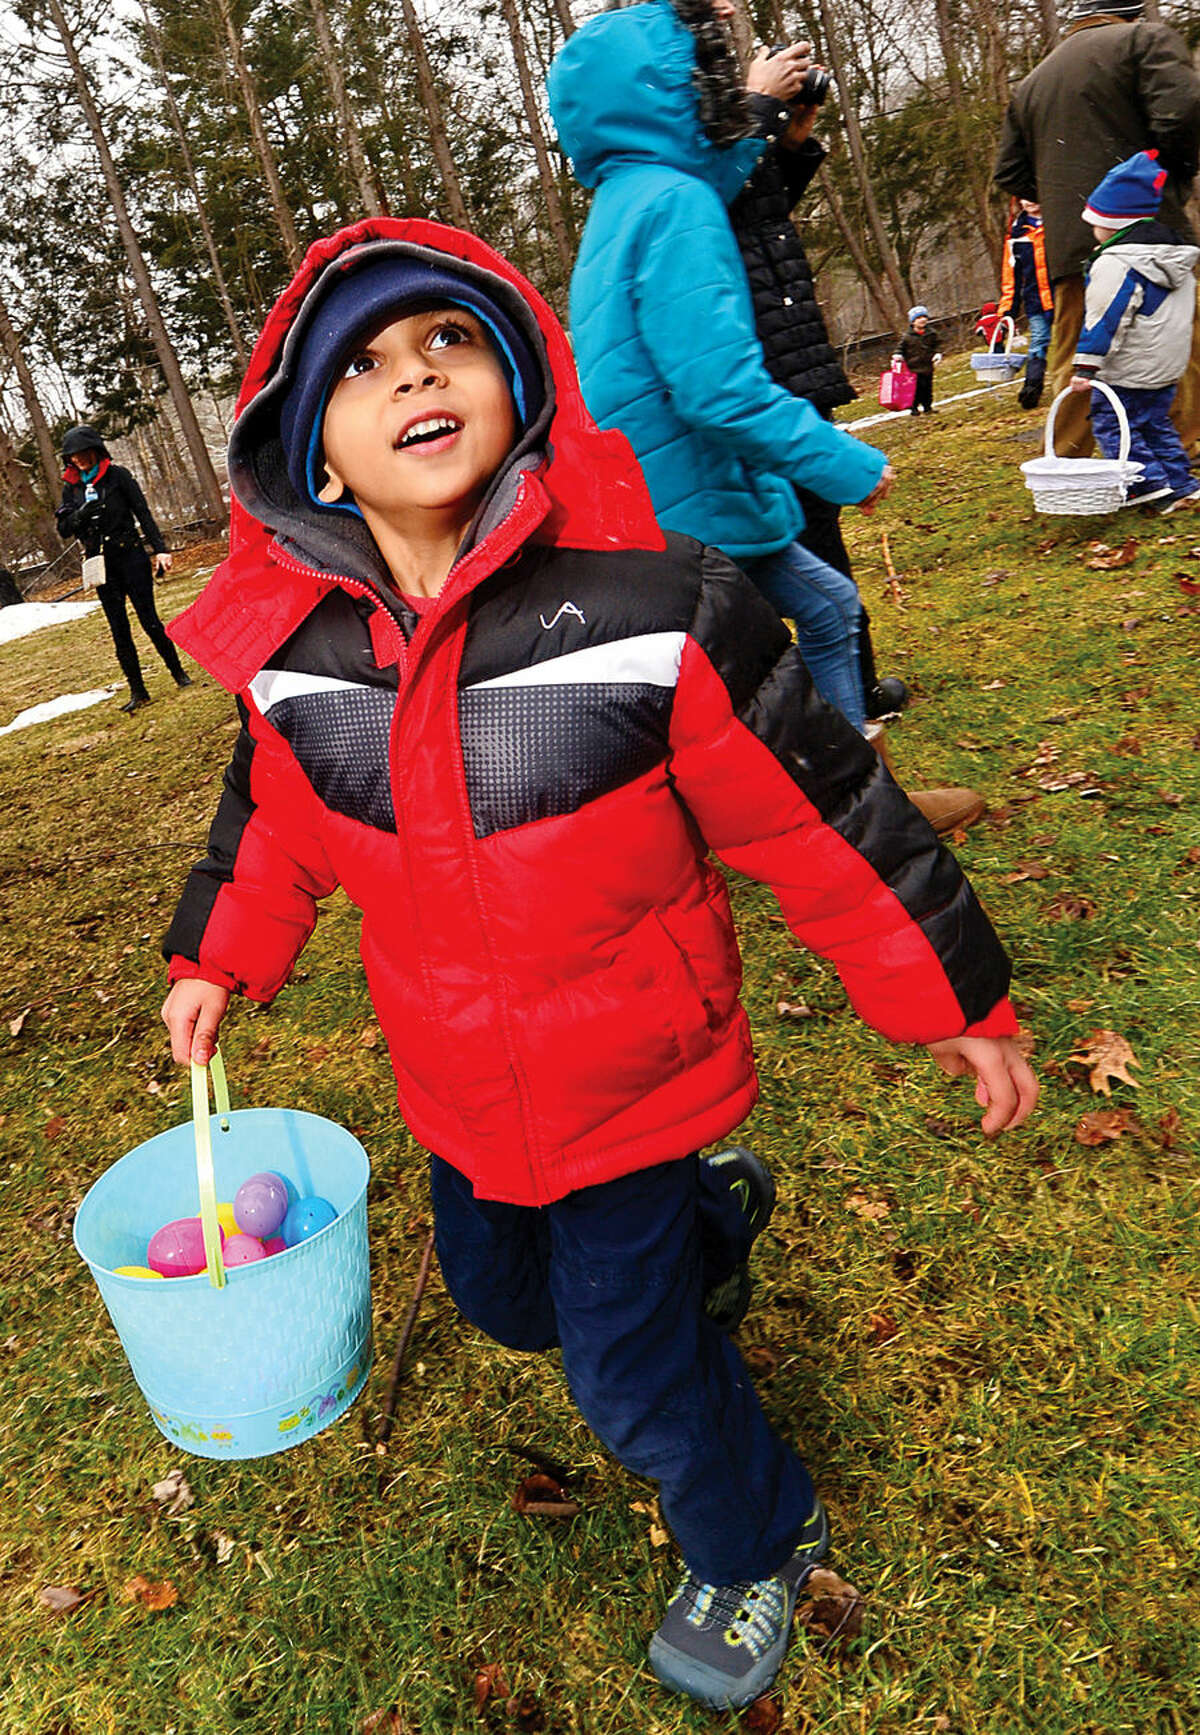 Hour photo / Erik Trautmann Neal Kaoud searches for eggs during the Wilton Republican Town Committee Easter Egg Hunt at Trackside Teen Center Saturday.